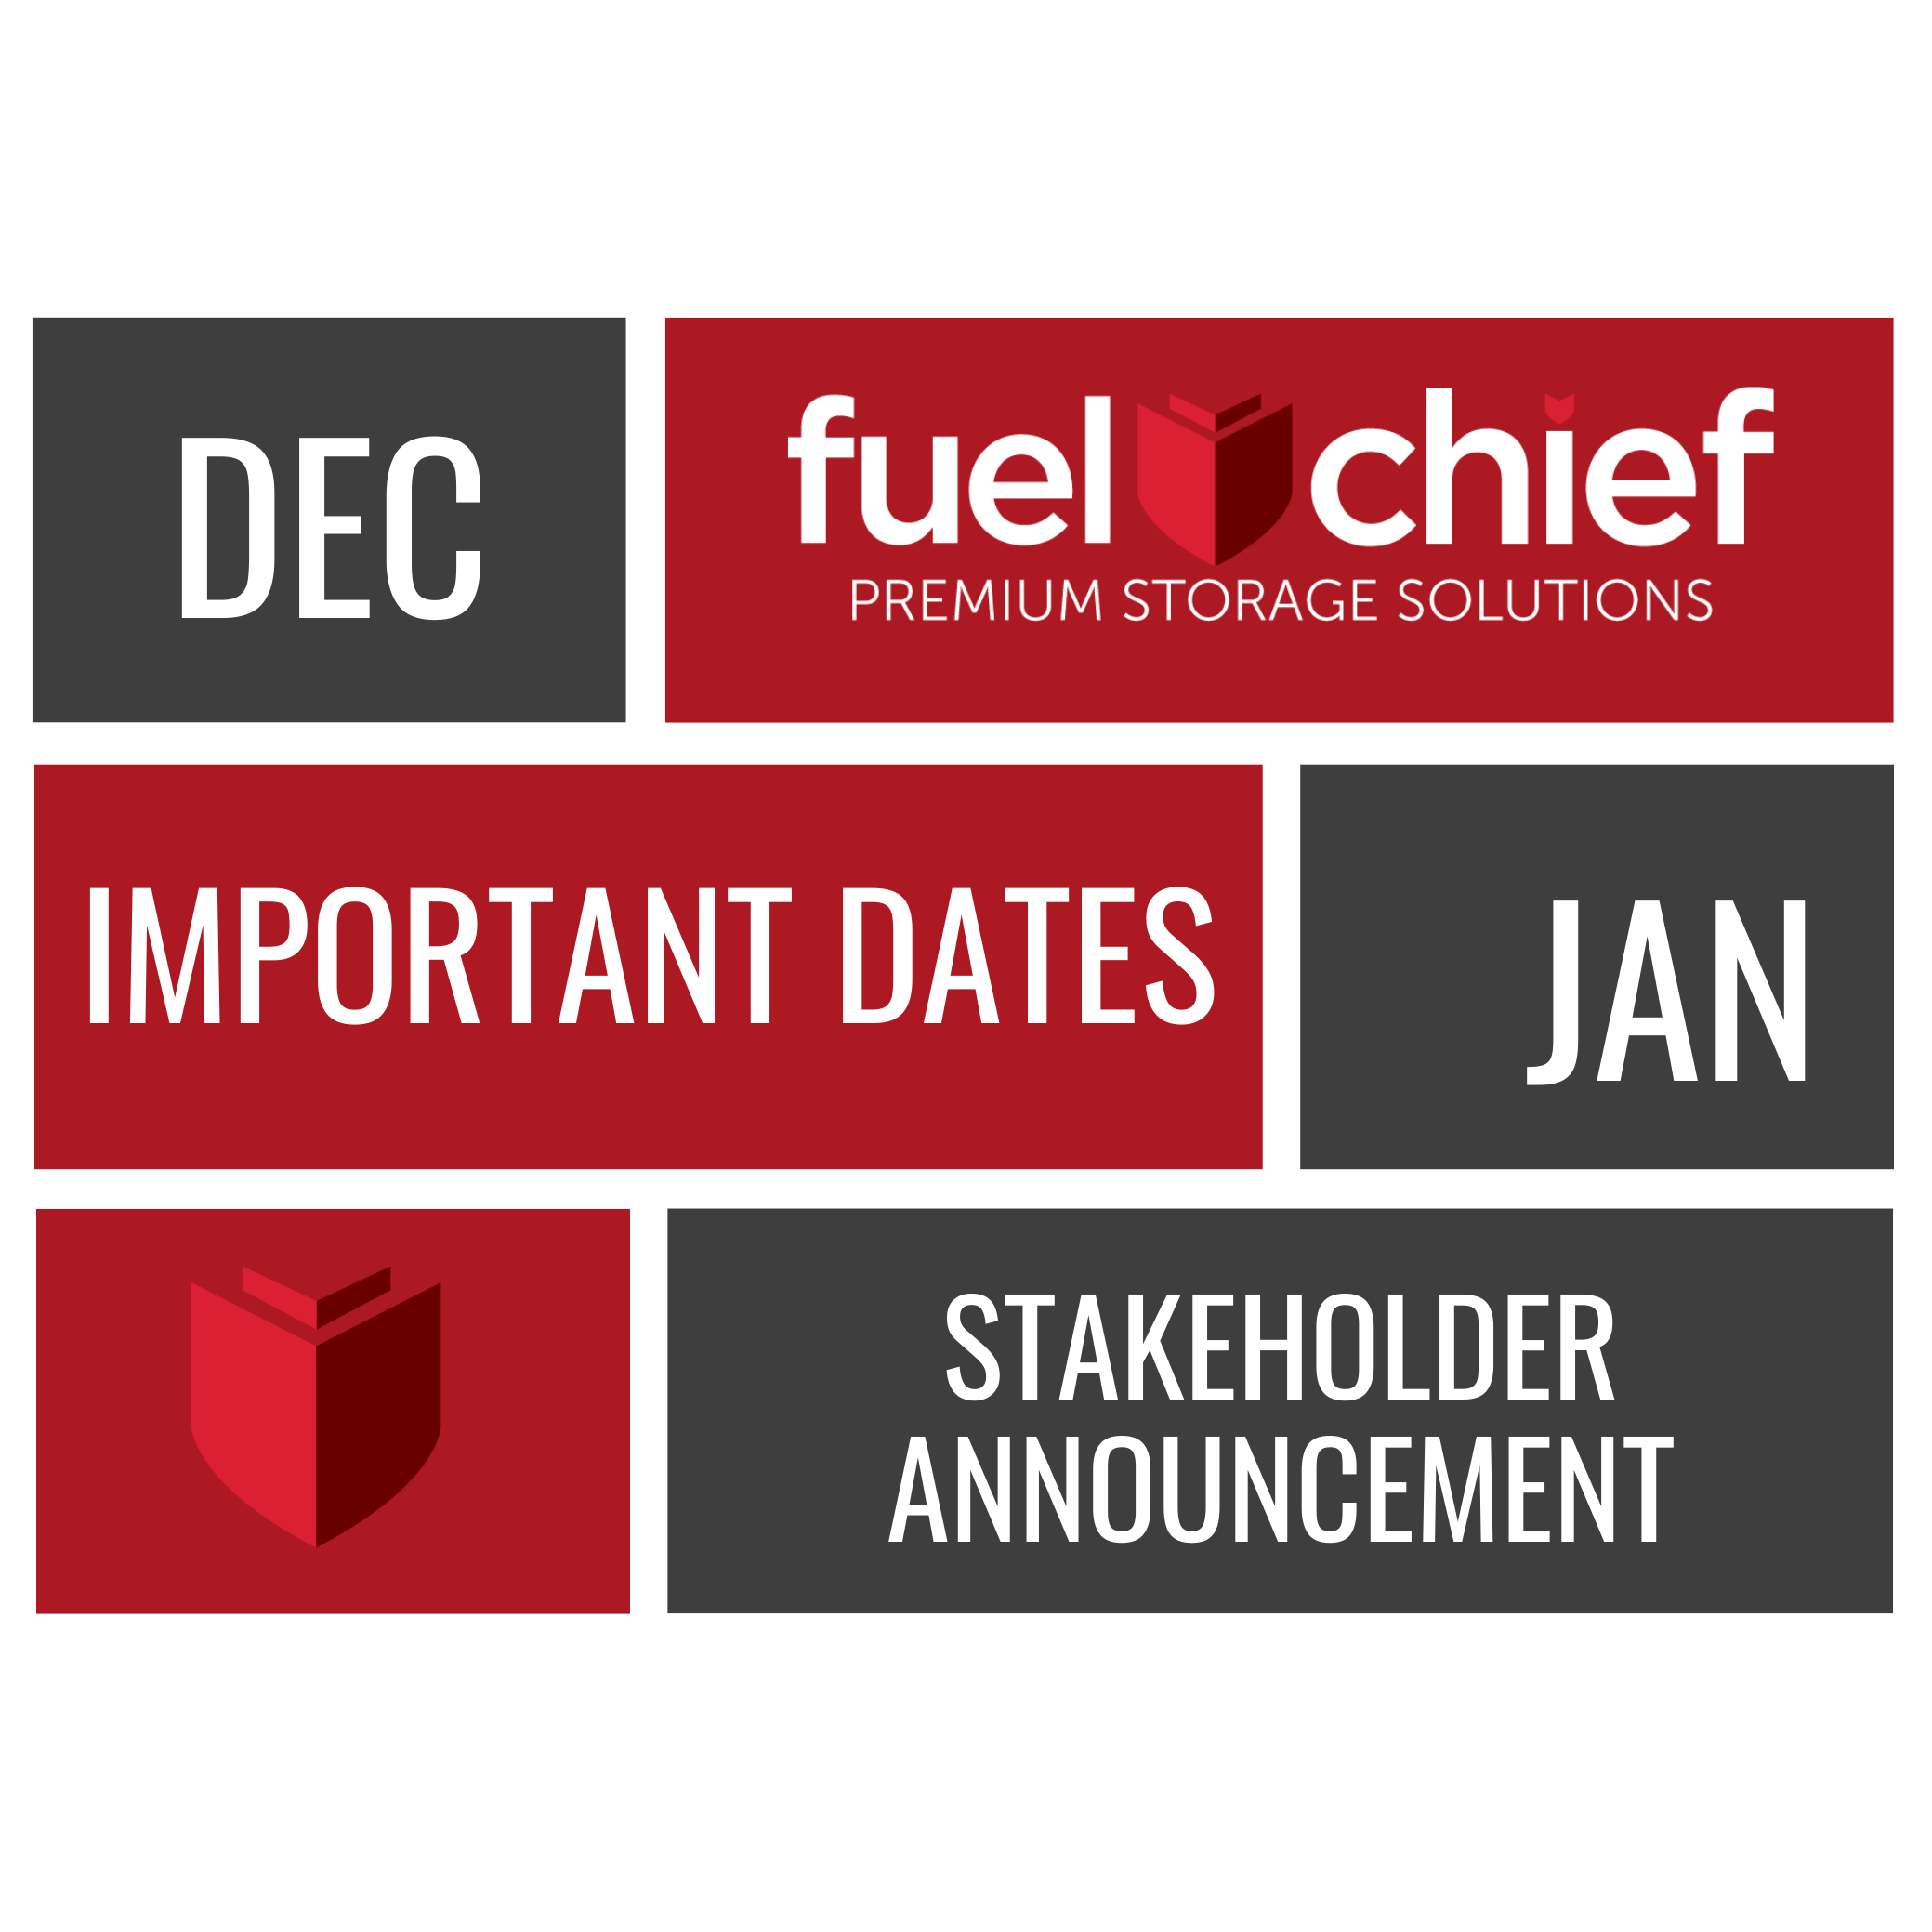 Fuelchief End Of year message